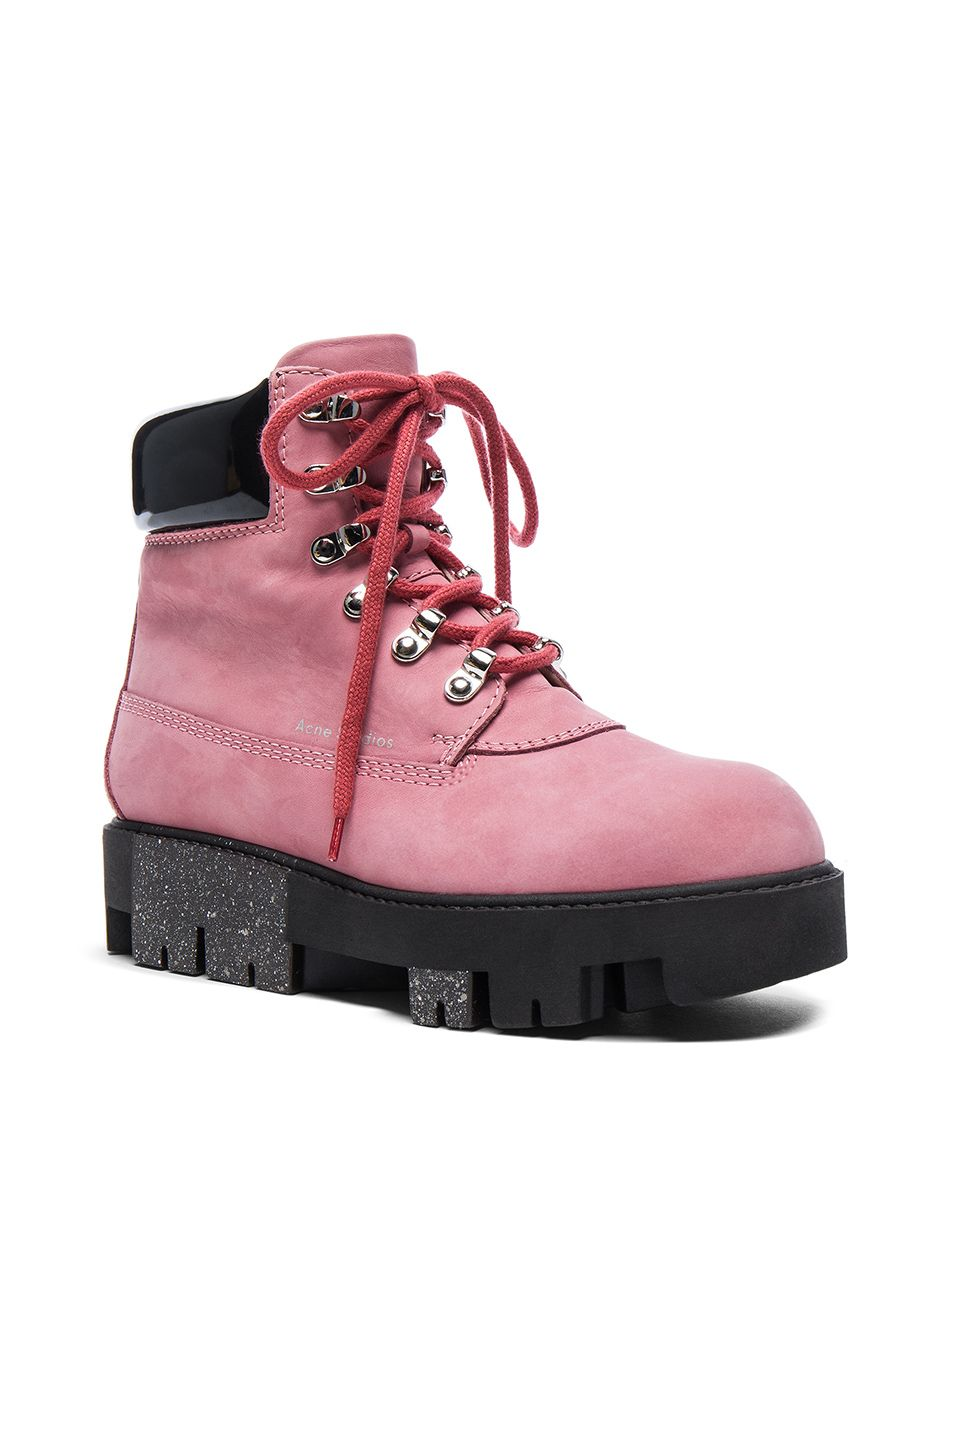 317d6ad98b6 Image 2 of Acne Studios Leather Telde Boots in Bubble Pink & Black ...